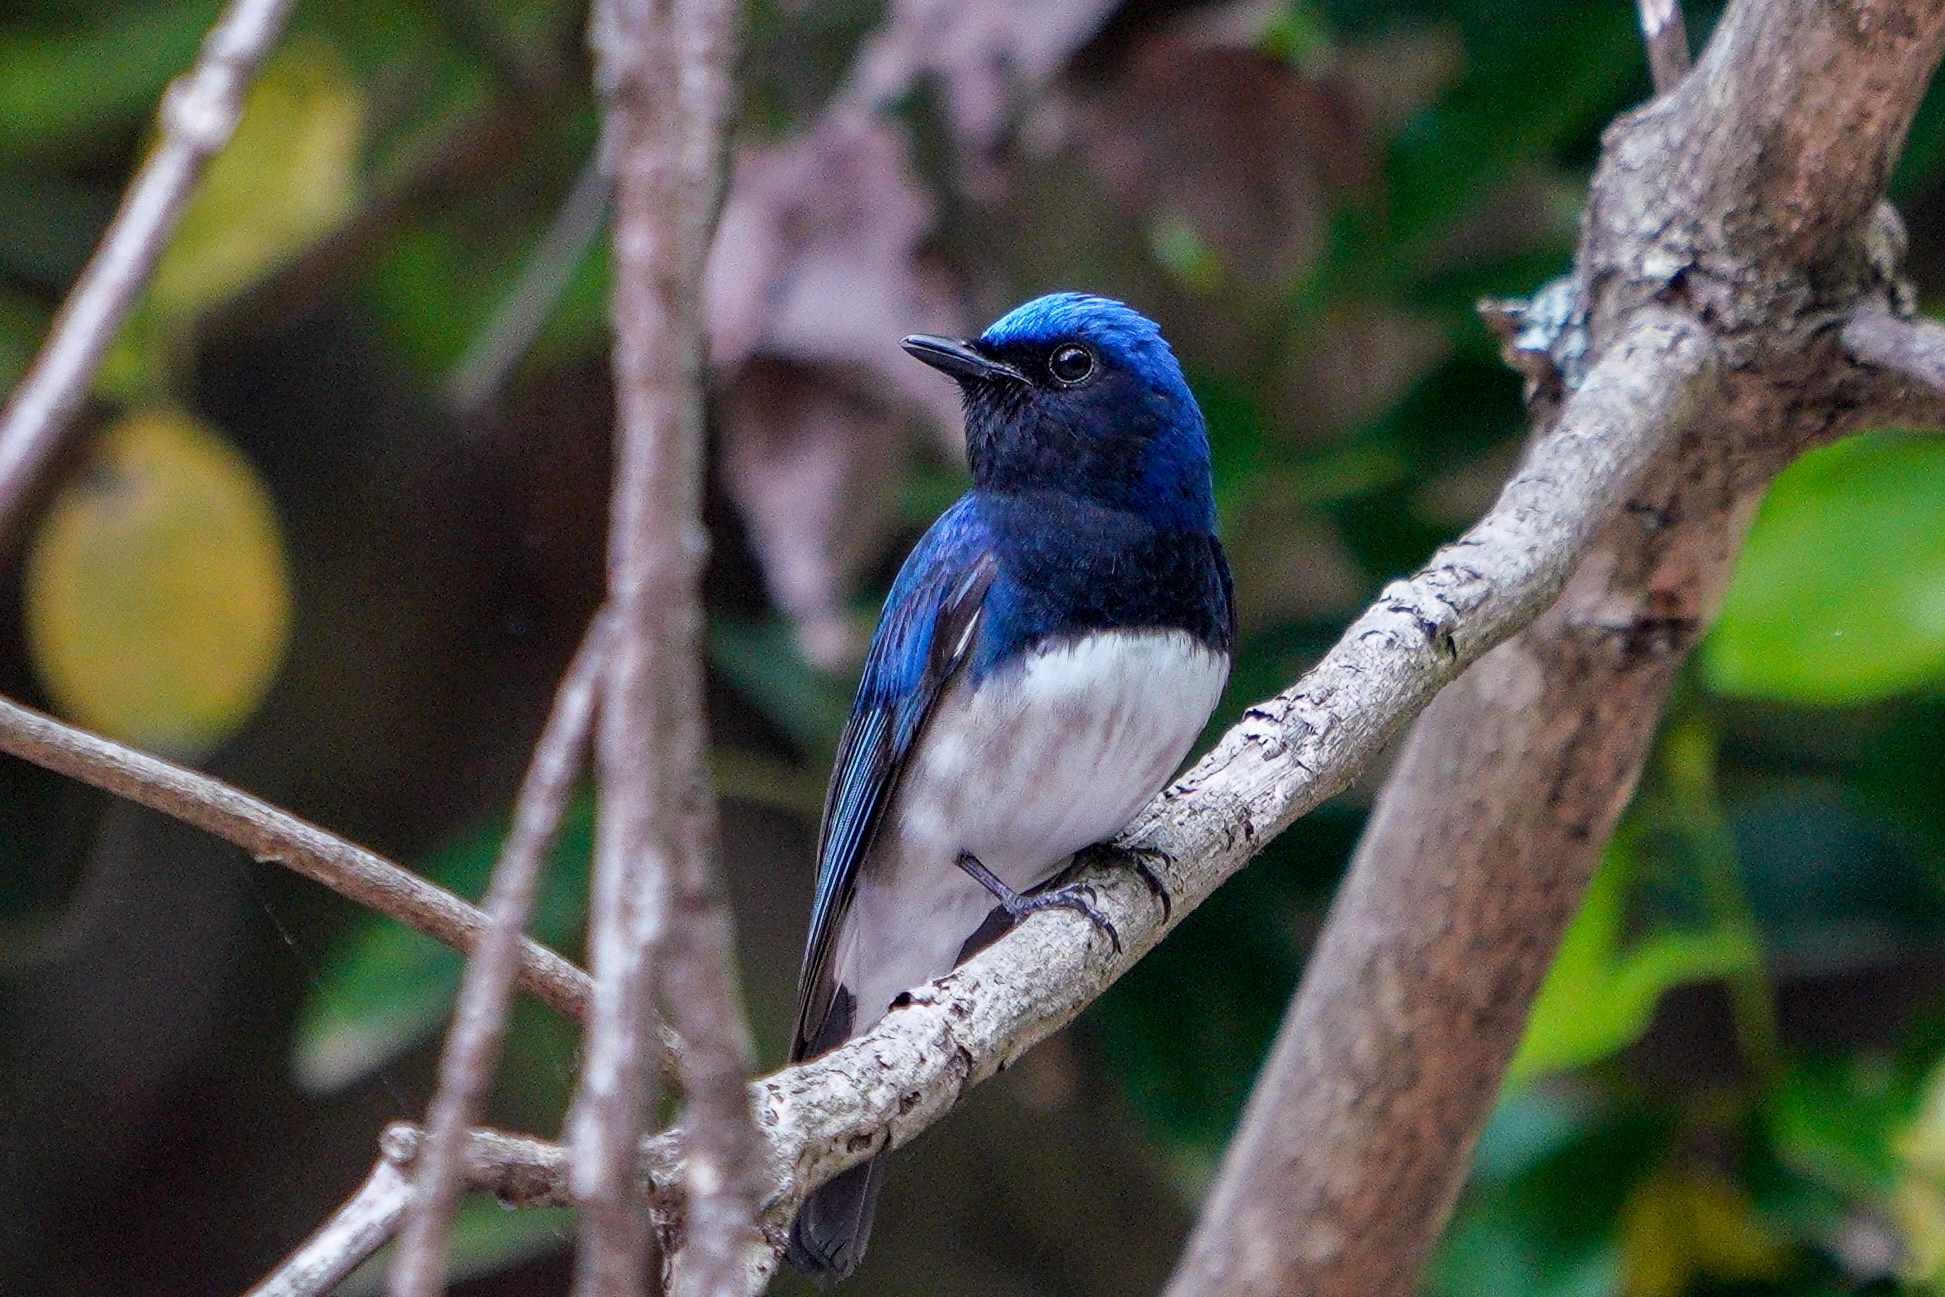 オオルリ Blue-and-white flycatcher